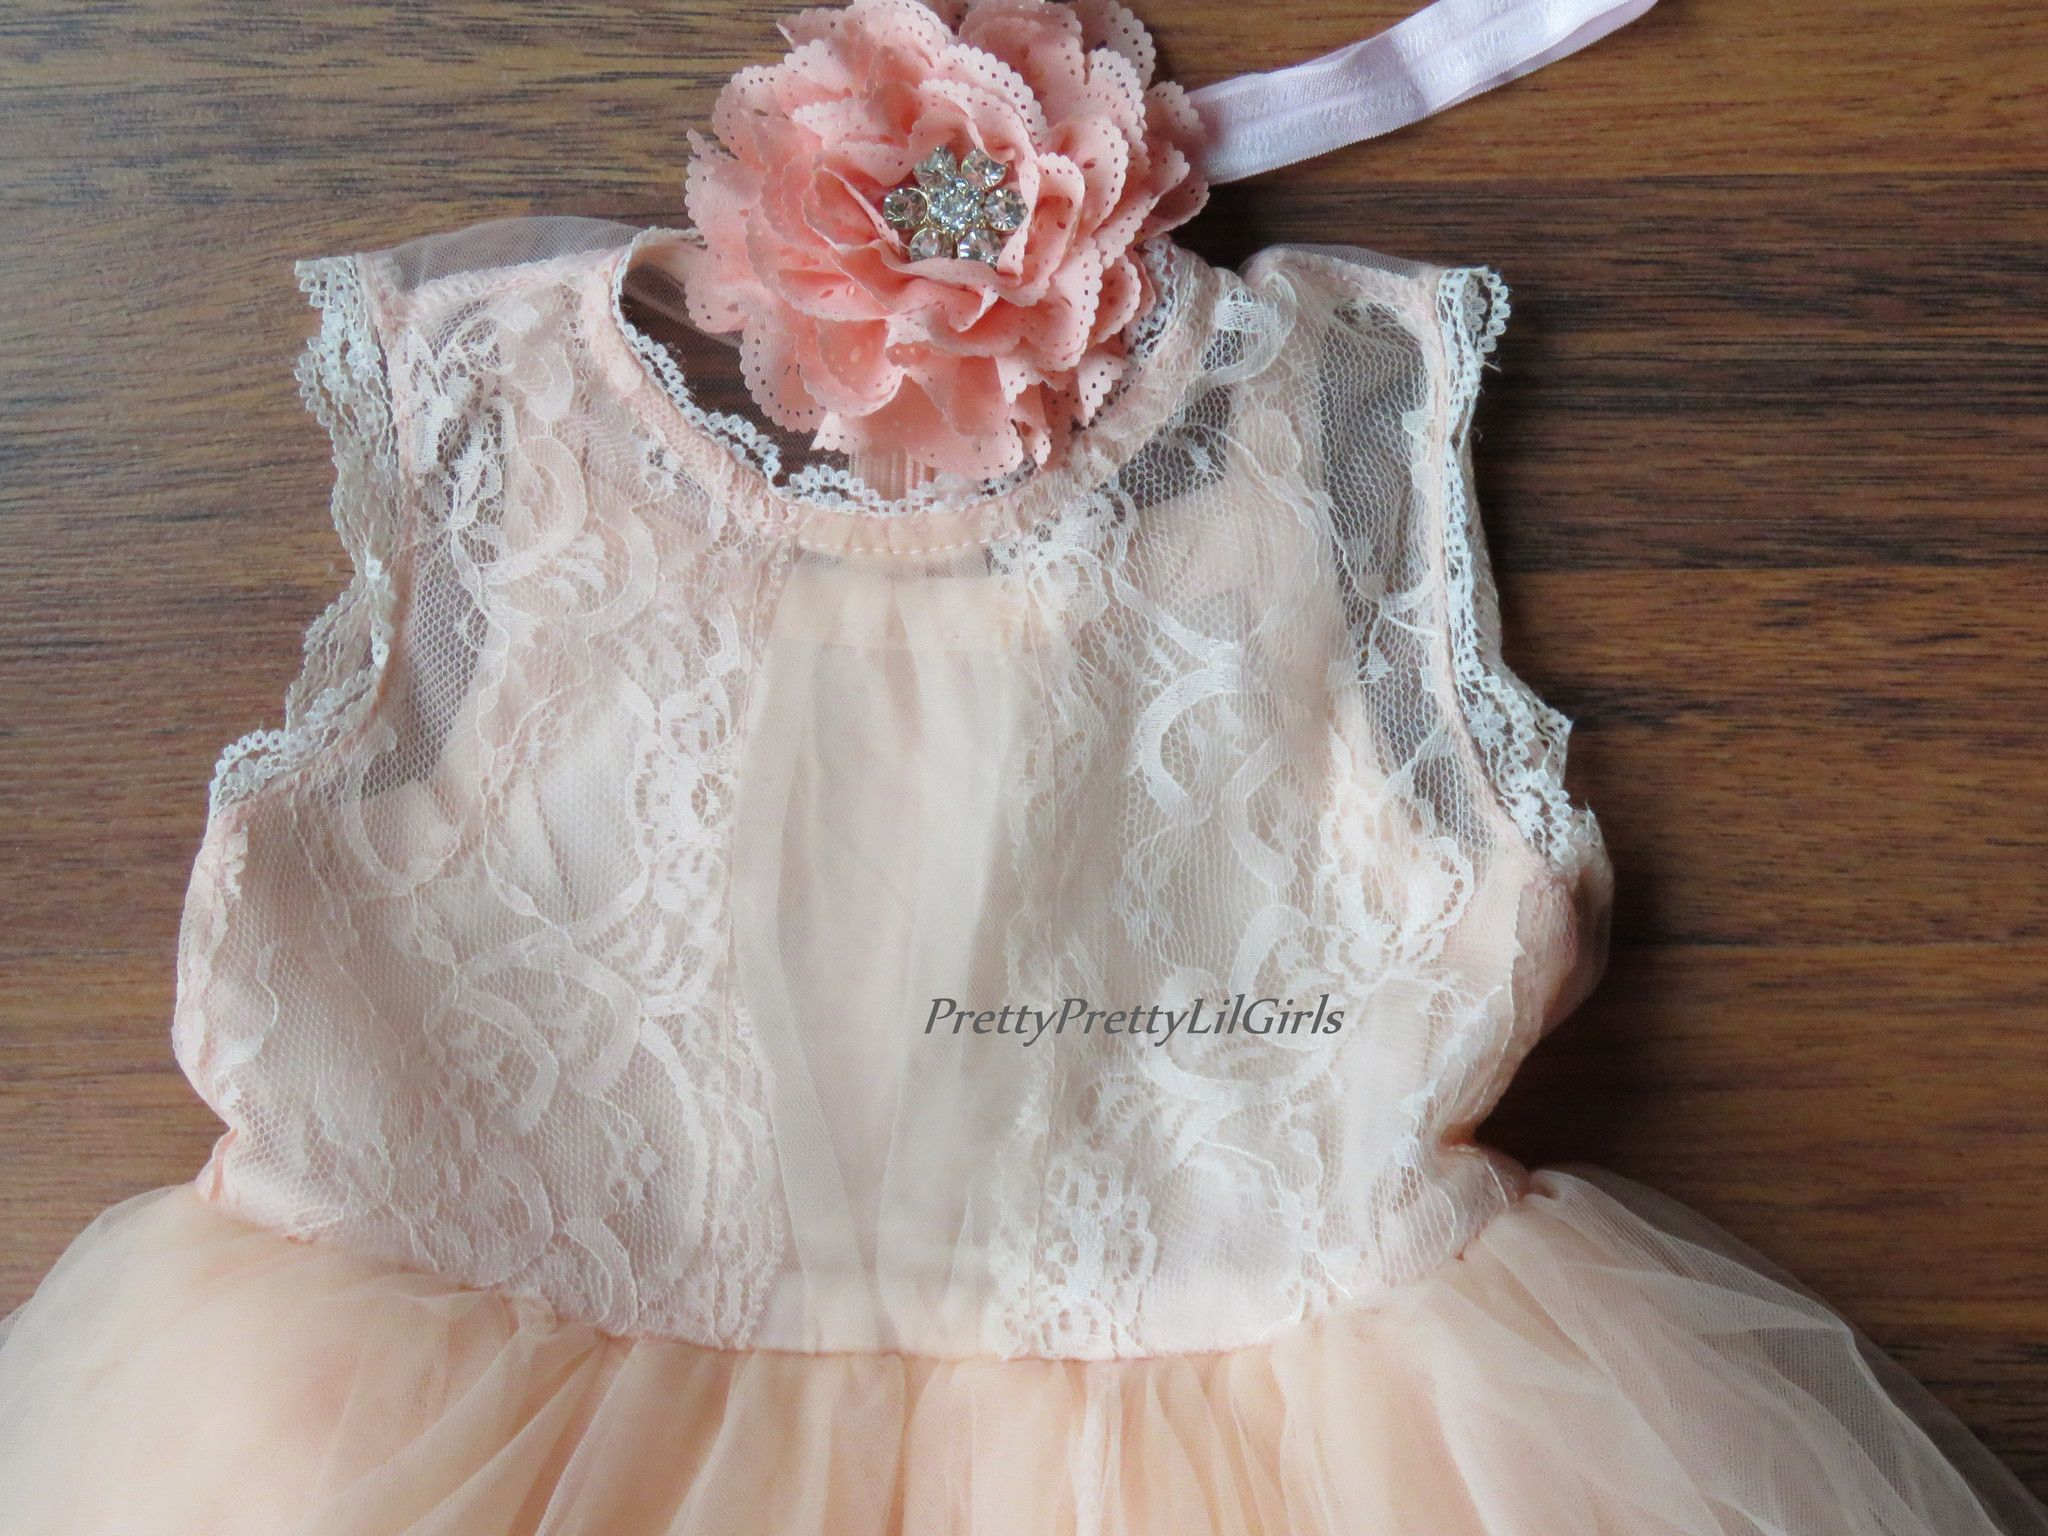 Lace dress for baby girl  Peach Little Girls Dress Peach Baby Girl Dress Toddler Lace Dress